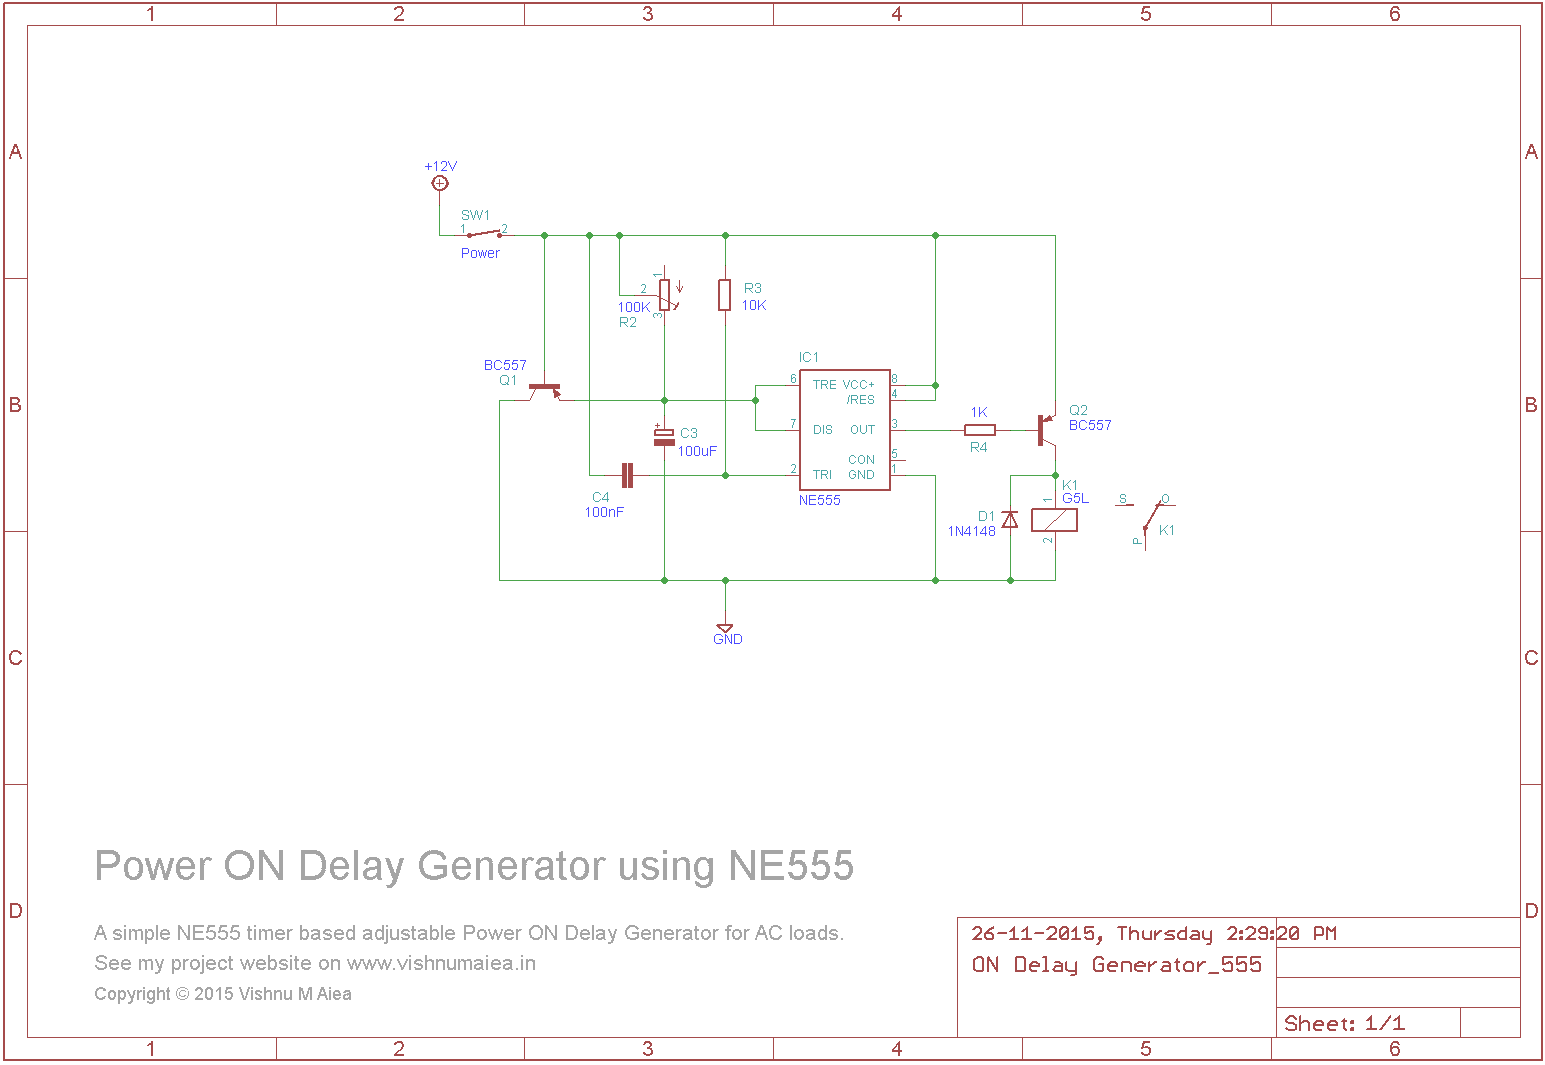 power on delay generator circuit using NE555